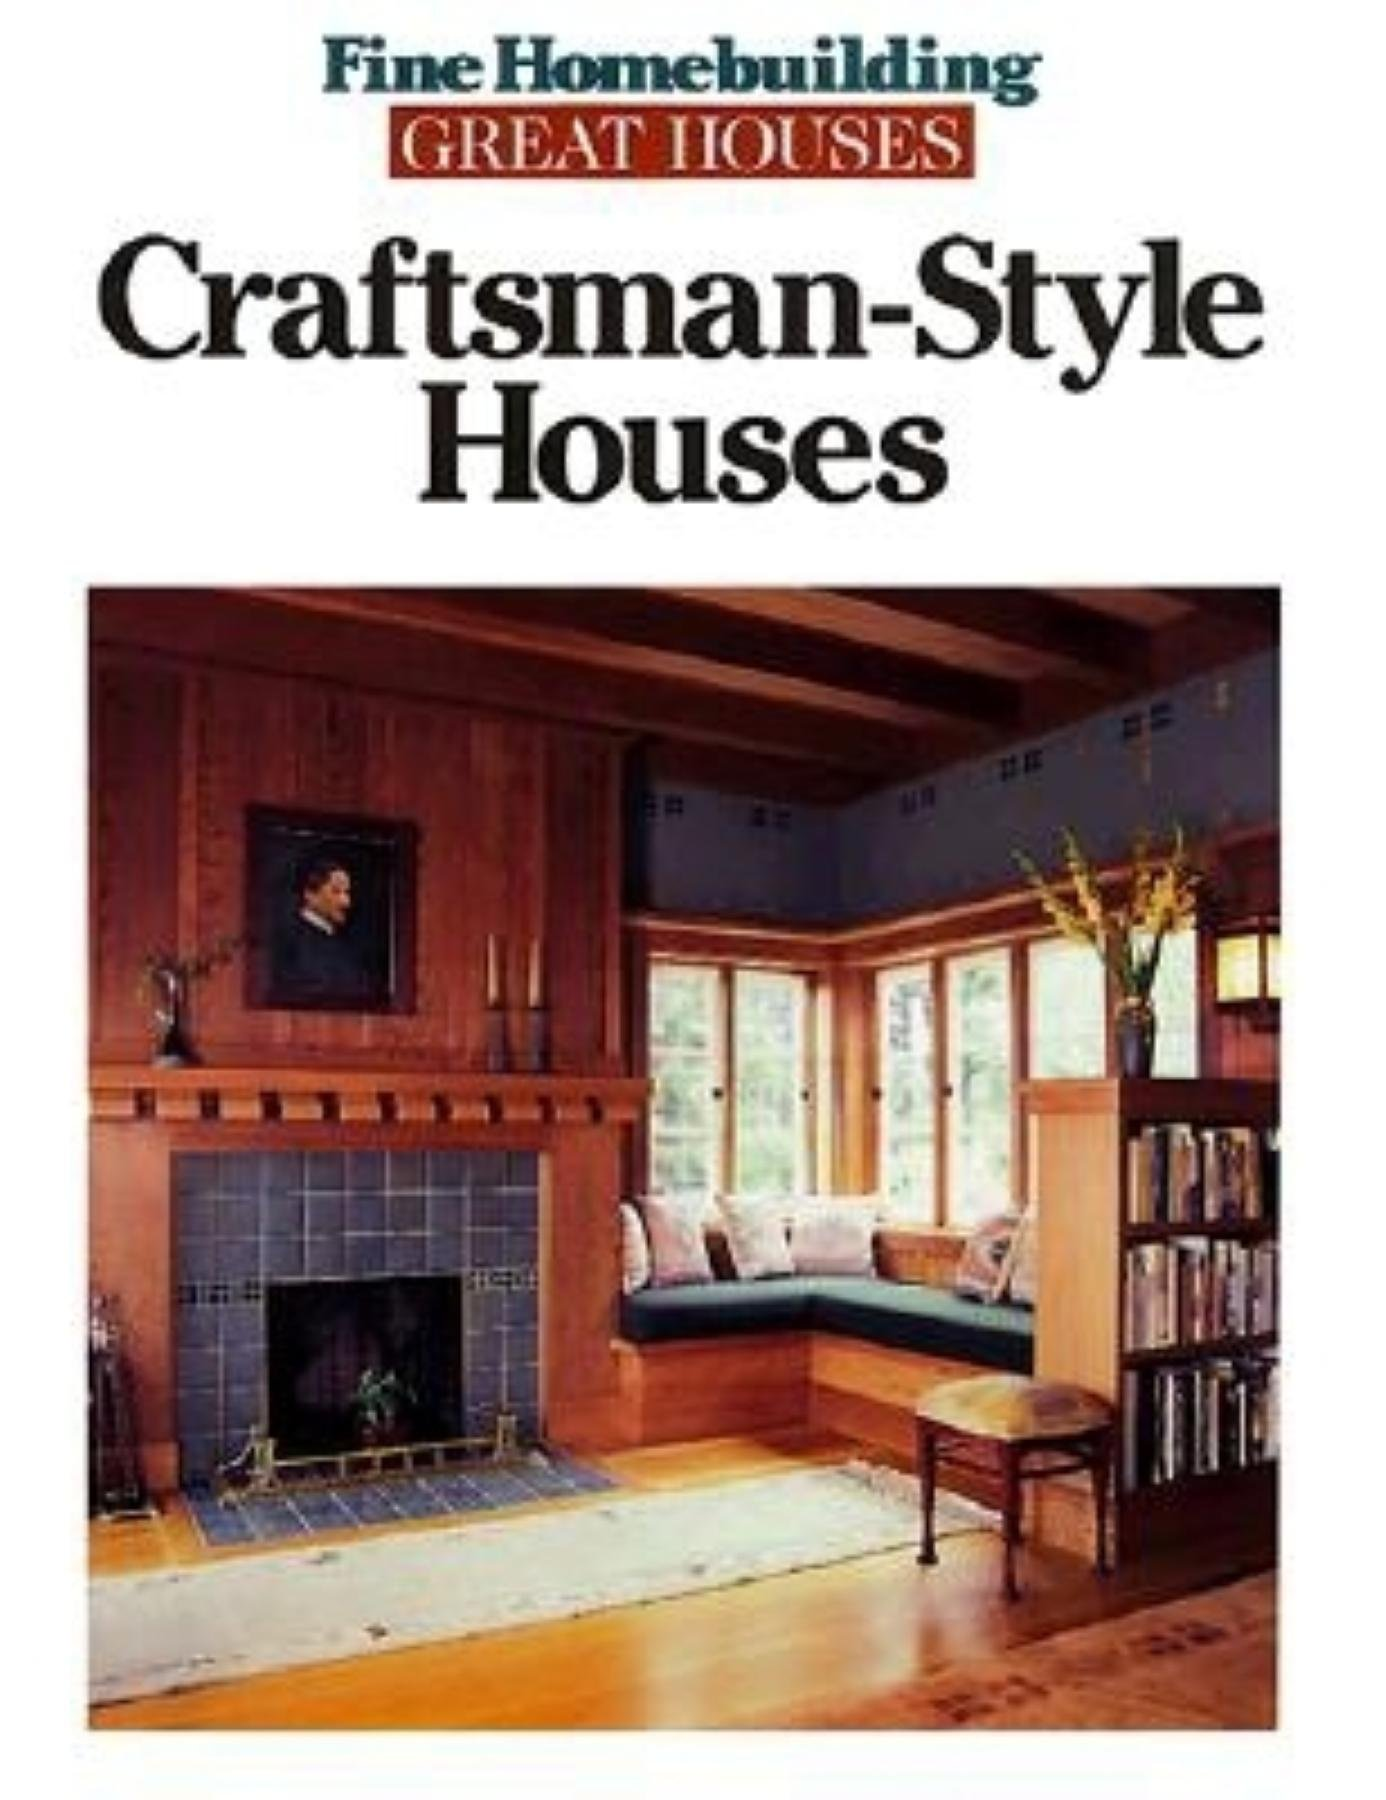 Craftsman-Style Houses (Great Houses): Fine Homebuilding ...